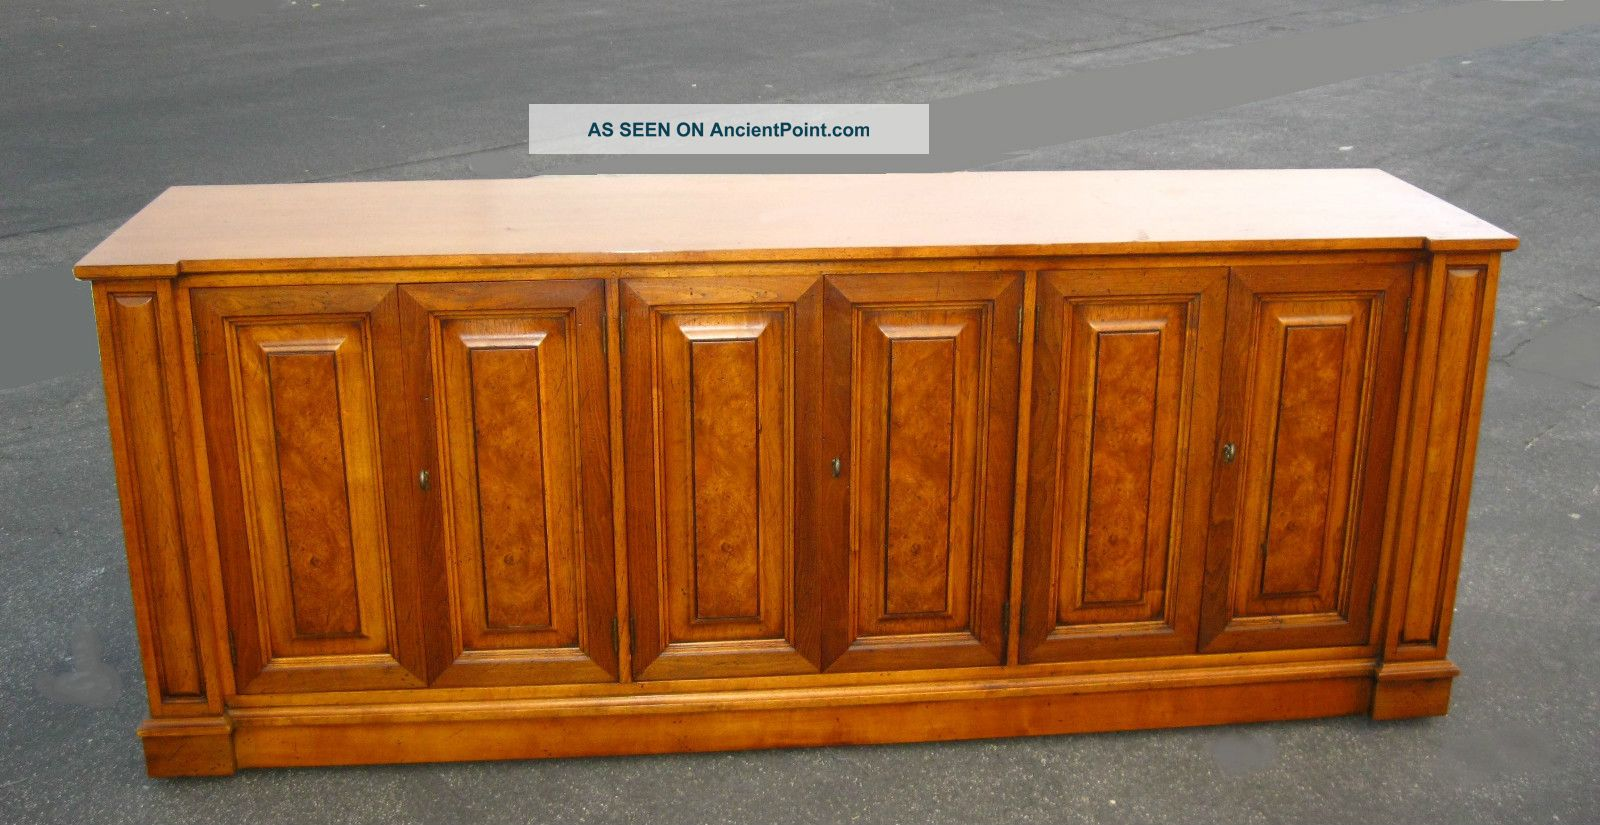 Vintage Mid Century Modern Henredon Town & Country Sideboard Buffet Credenza Post-1950 photo